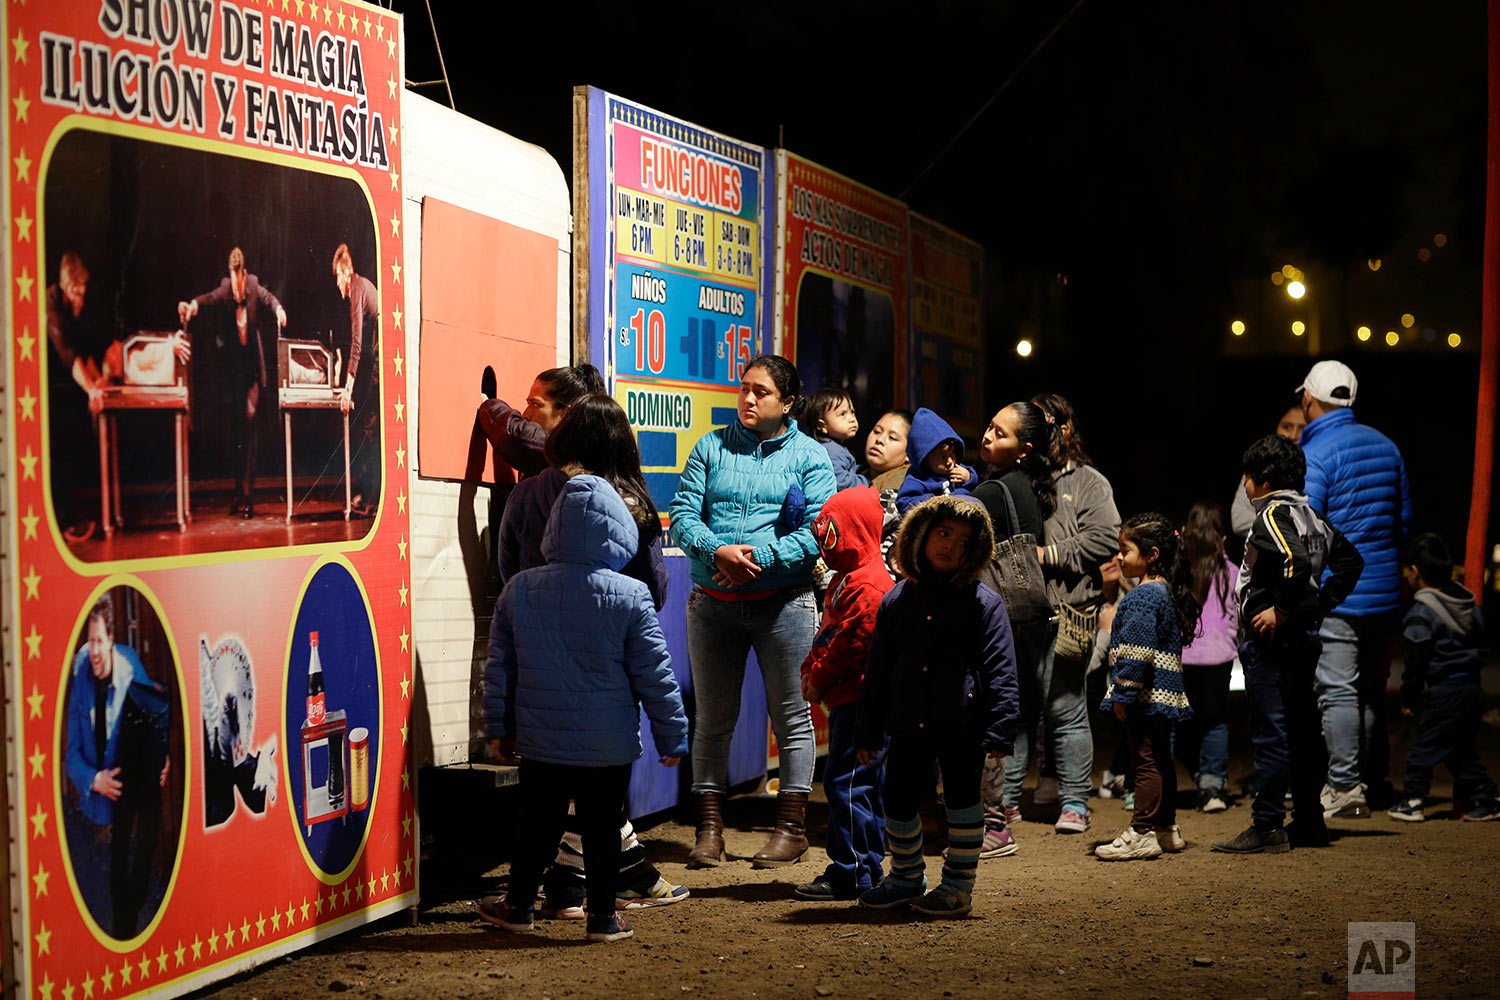 "People buy tickets to enter a show by the International Circus set up in the shantytown of Pro on the outskirts of Lima, Peru, July 20, 2018. The billboard reads in Spanish ""Show of magic, illusion and fantasy."" (AP Photo/Martin Mejia)"